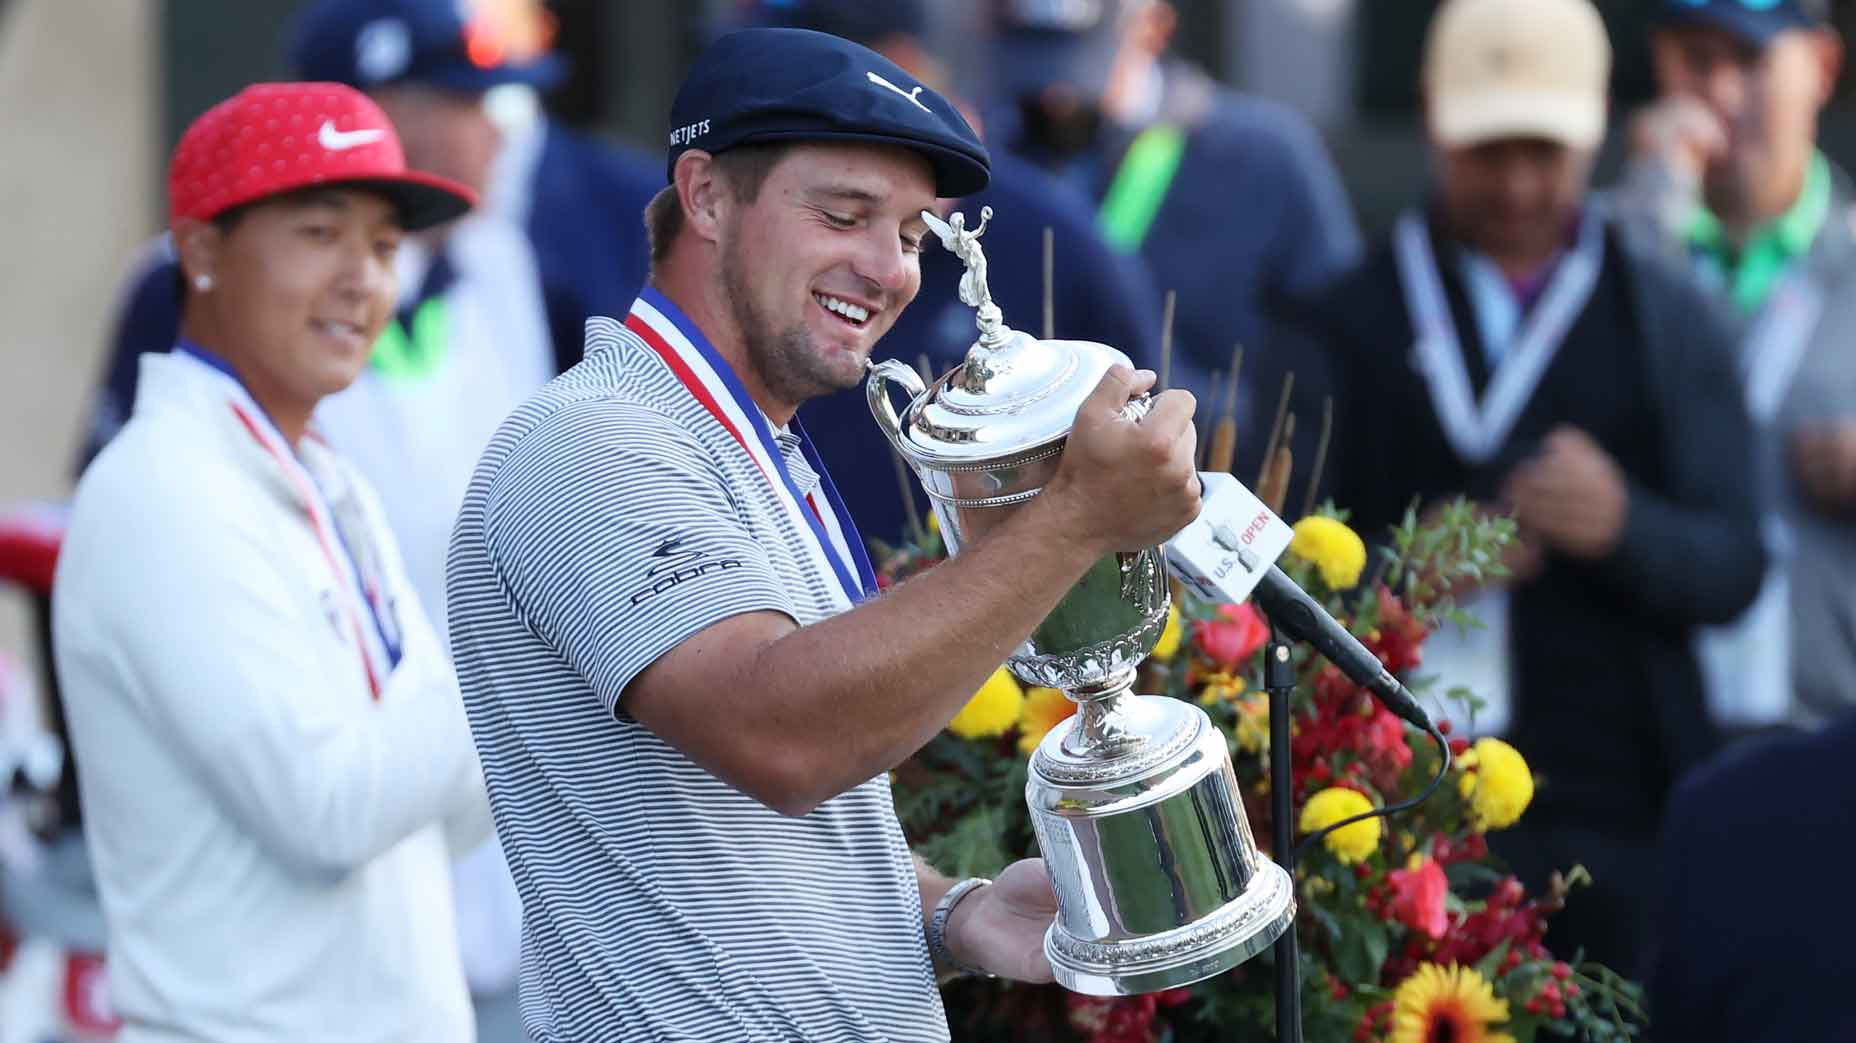 U.S. Open 2020: Here's how much money every player made at Winged Foot